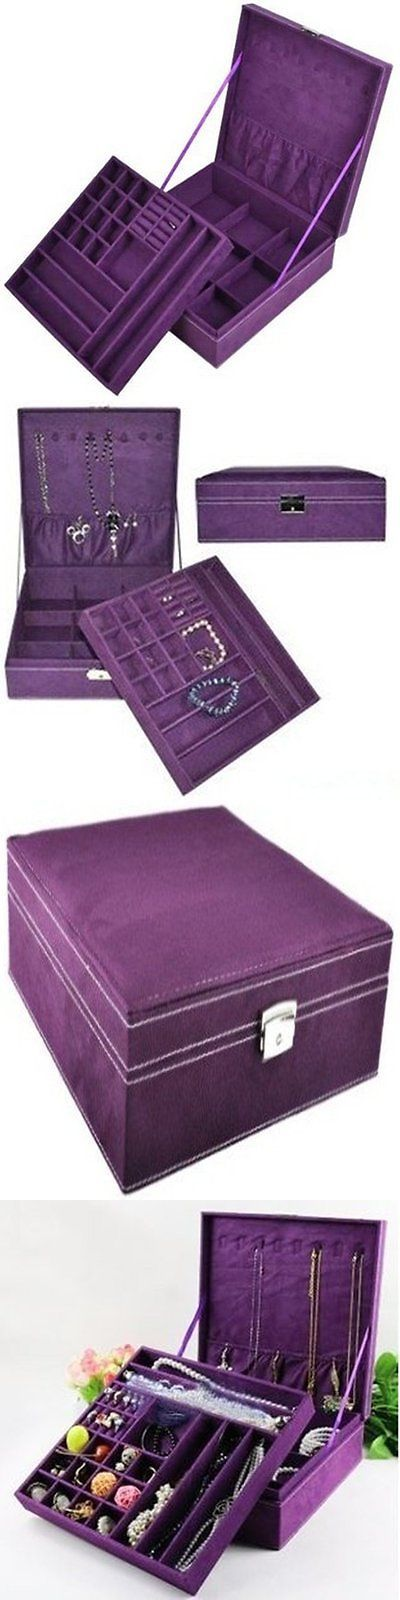 Jewelry Boxes 3820: Jewelry Box Purple Storage Cabinet Organizer Necklace Chest Display Case Armoire BUY IT NOW ONLY: $33.37